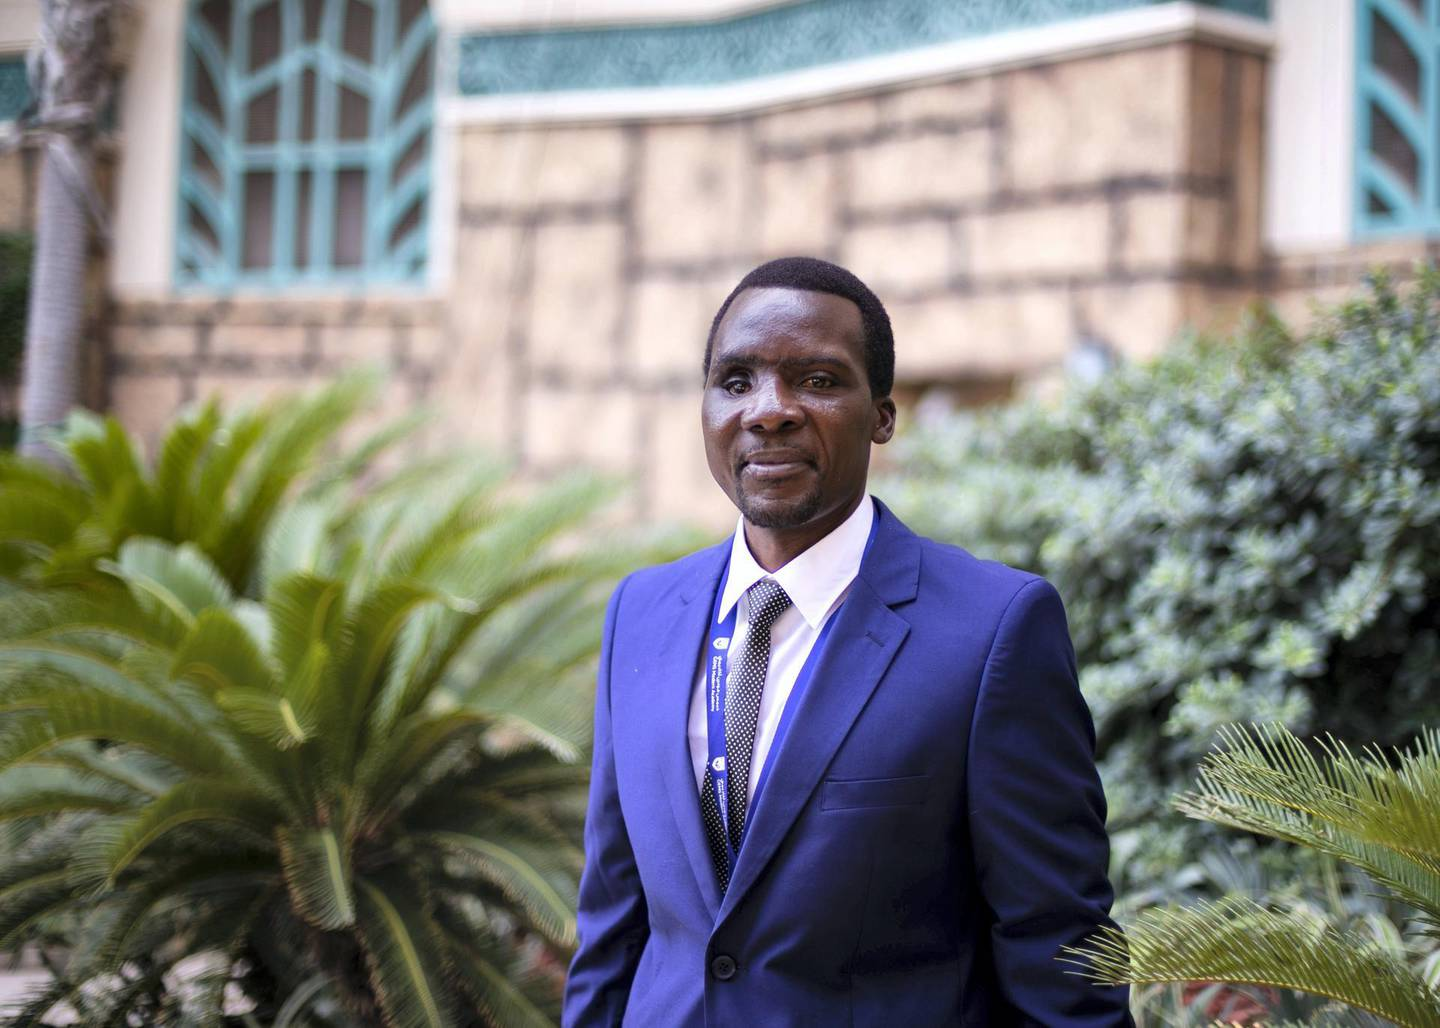 DUBAI, UNITED ARAB EMIRATES. 29 AUGUST 2019. Isaac Able from Tanzania joins GEMS education as a Math teacher.(Photo: Reem Mohammed/The National)Reporter:Section: